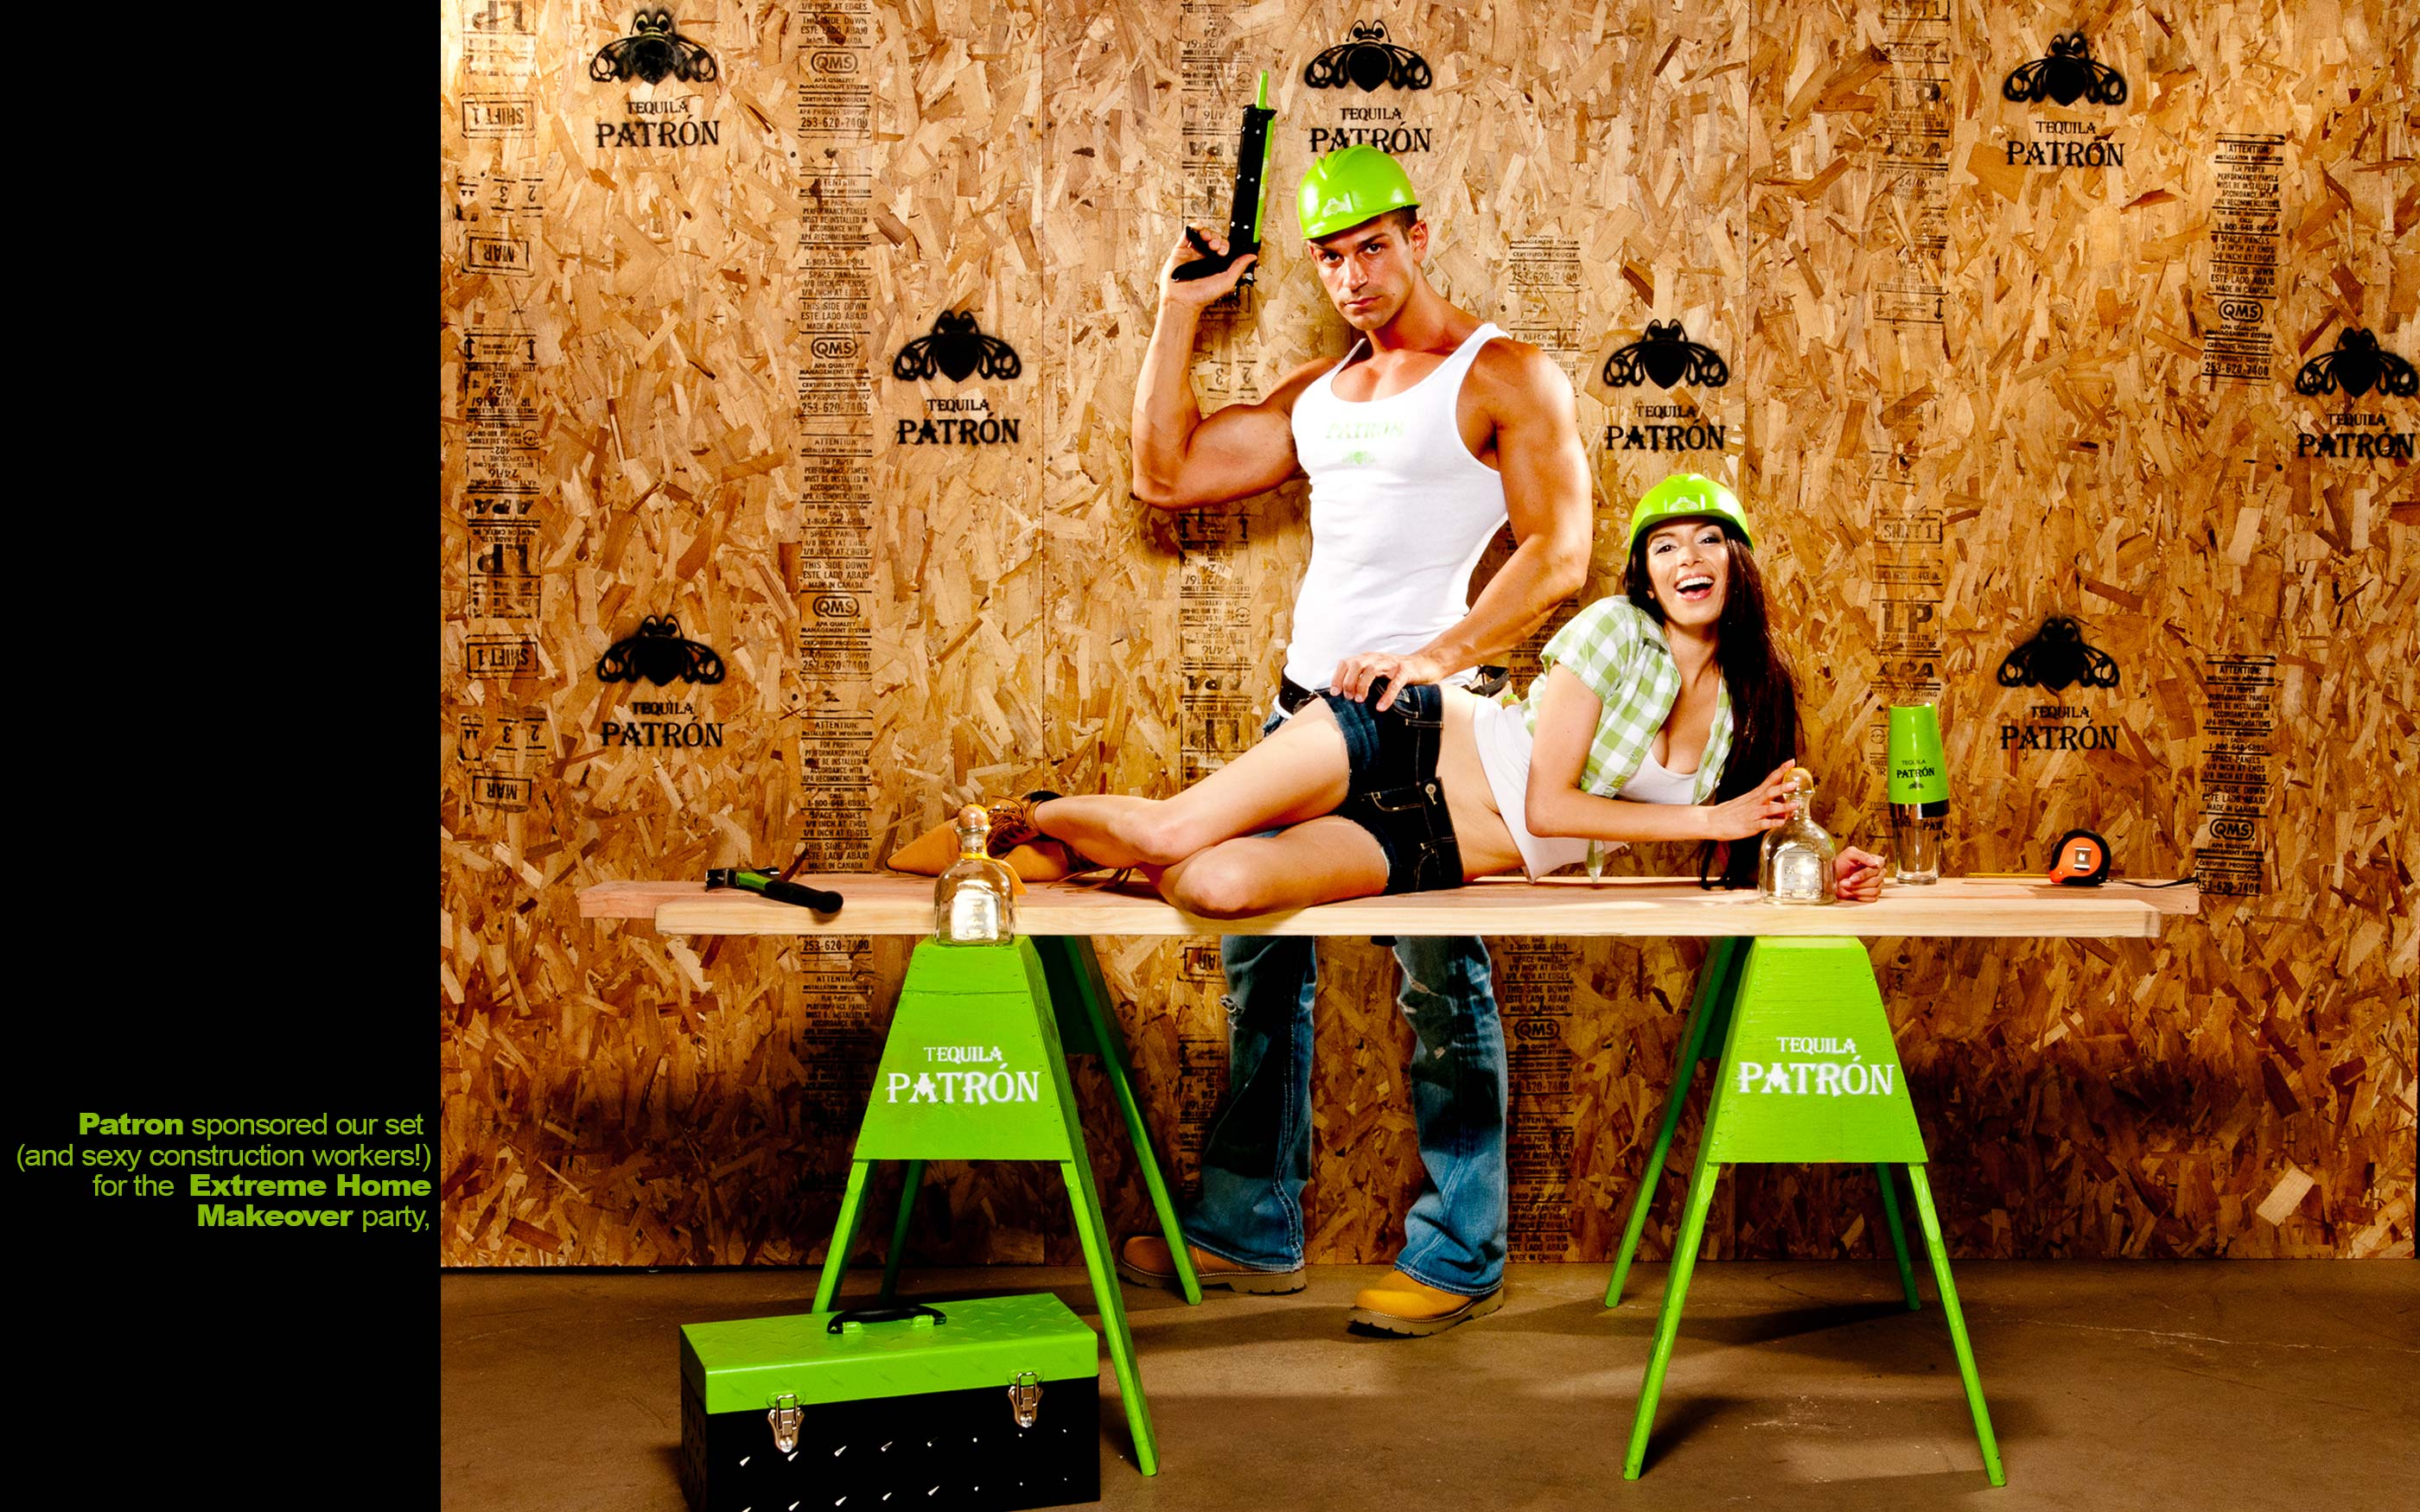 Patron Tequila Photo Booth At Extreme Home Makeover Party